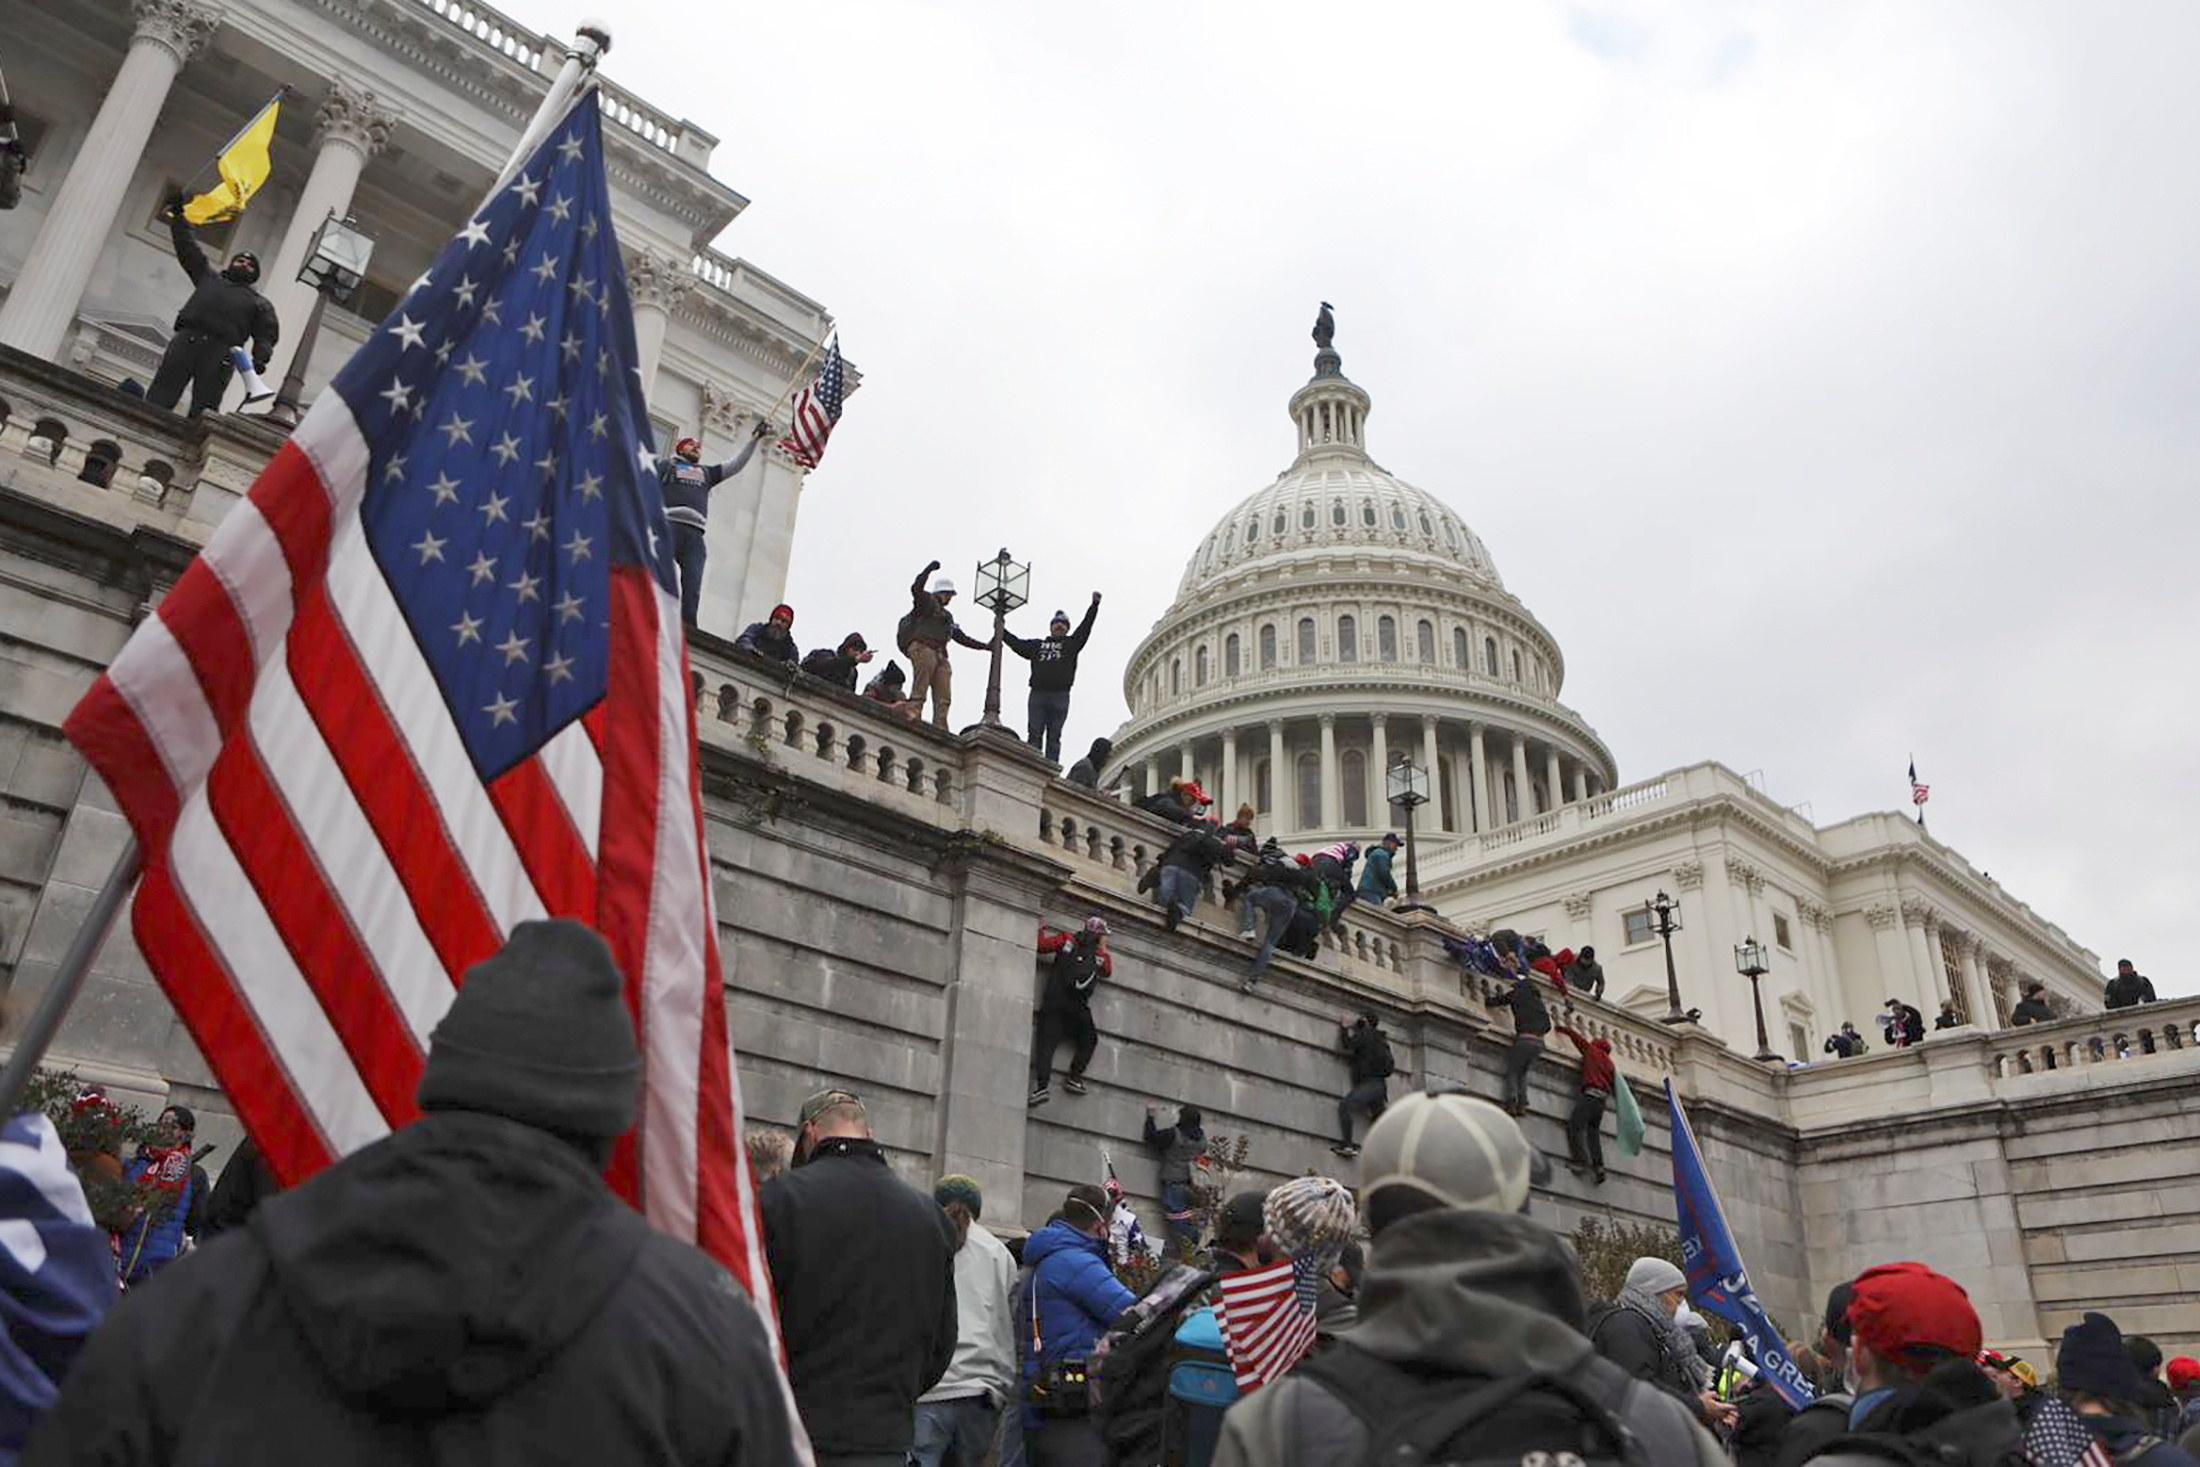 People scale the walls outside the Capitol building in DC